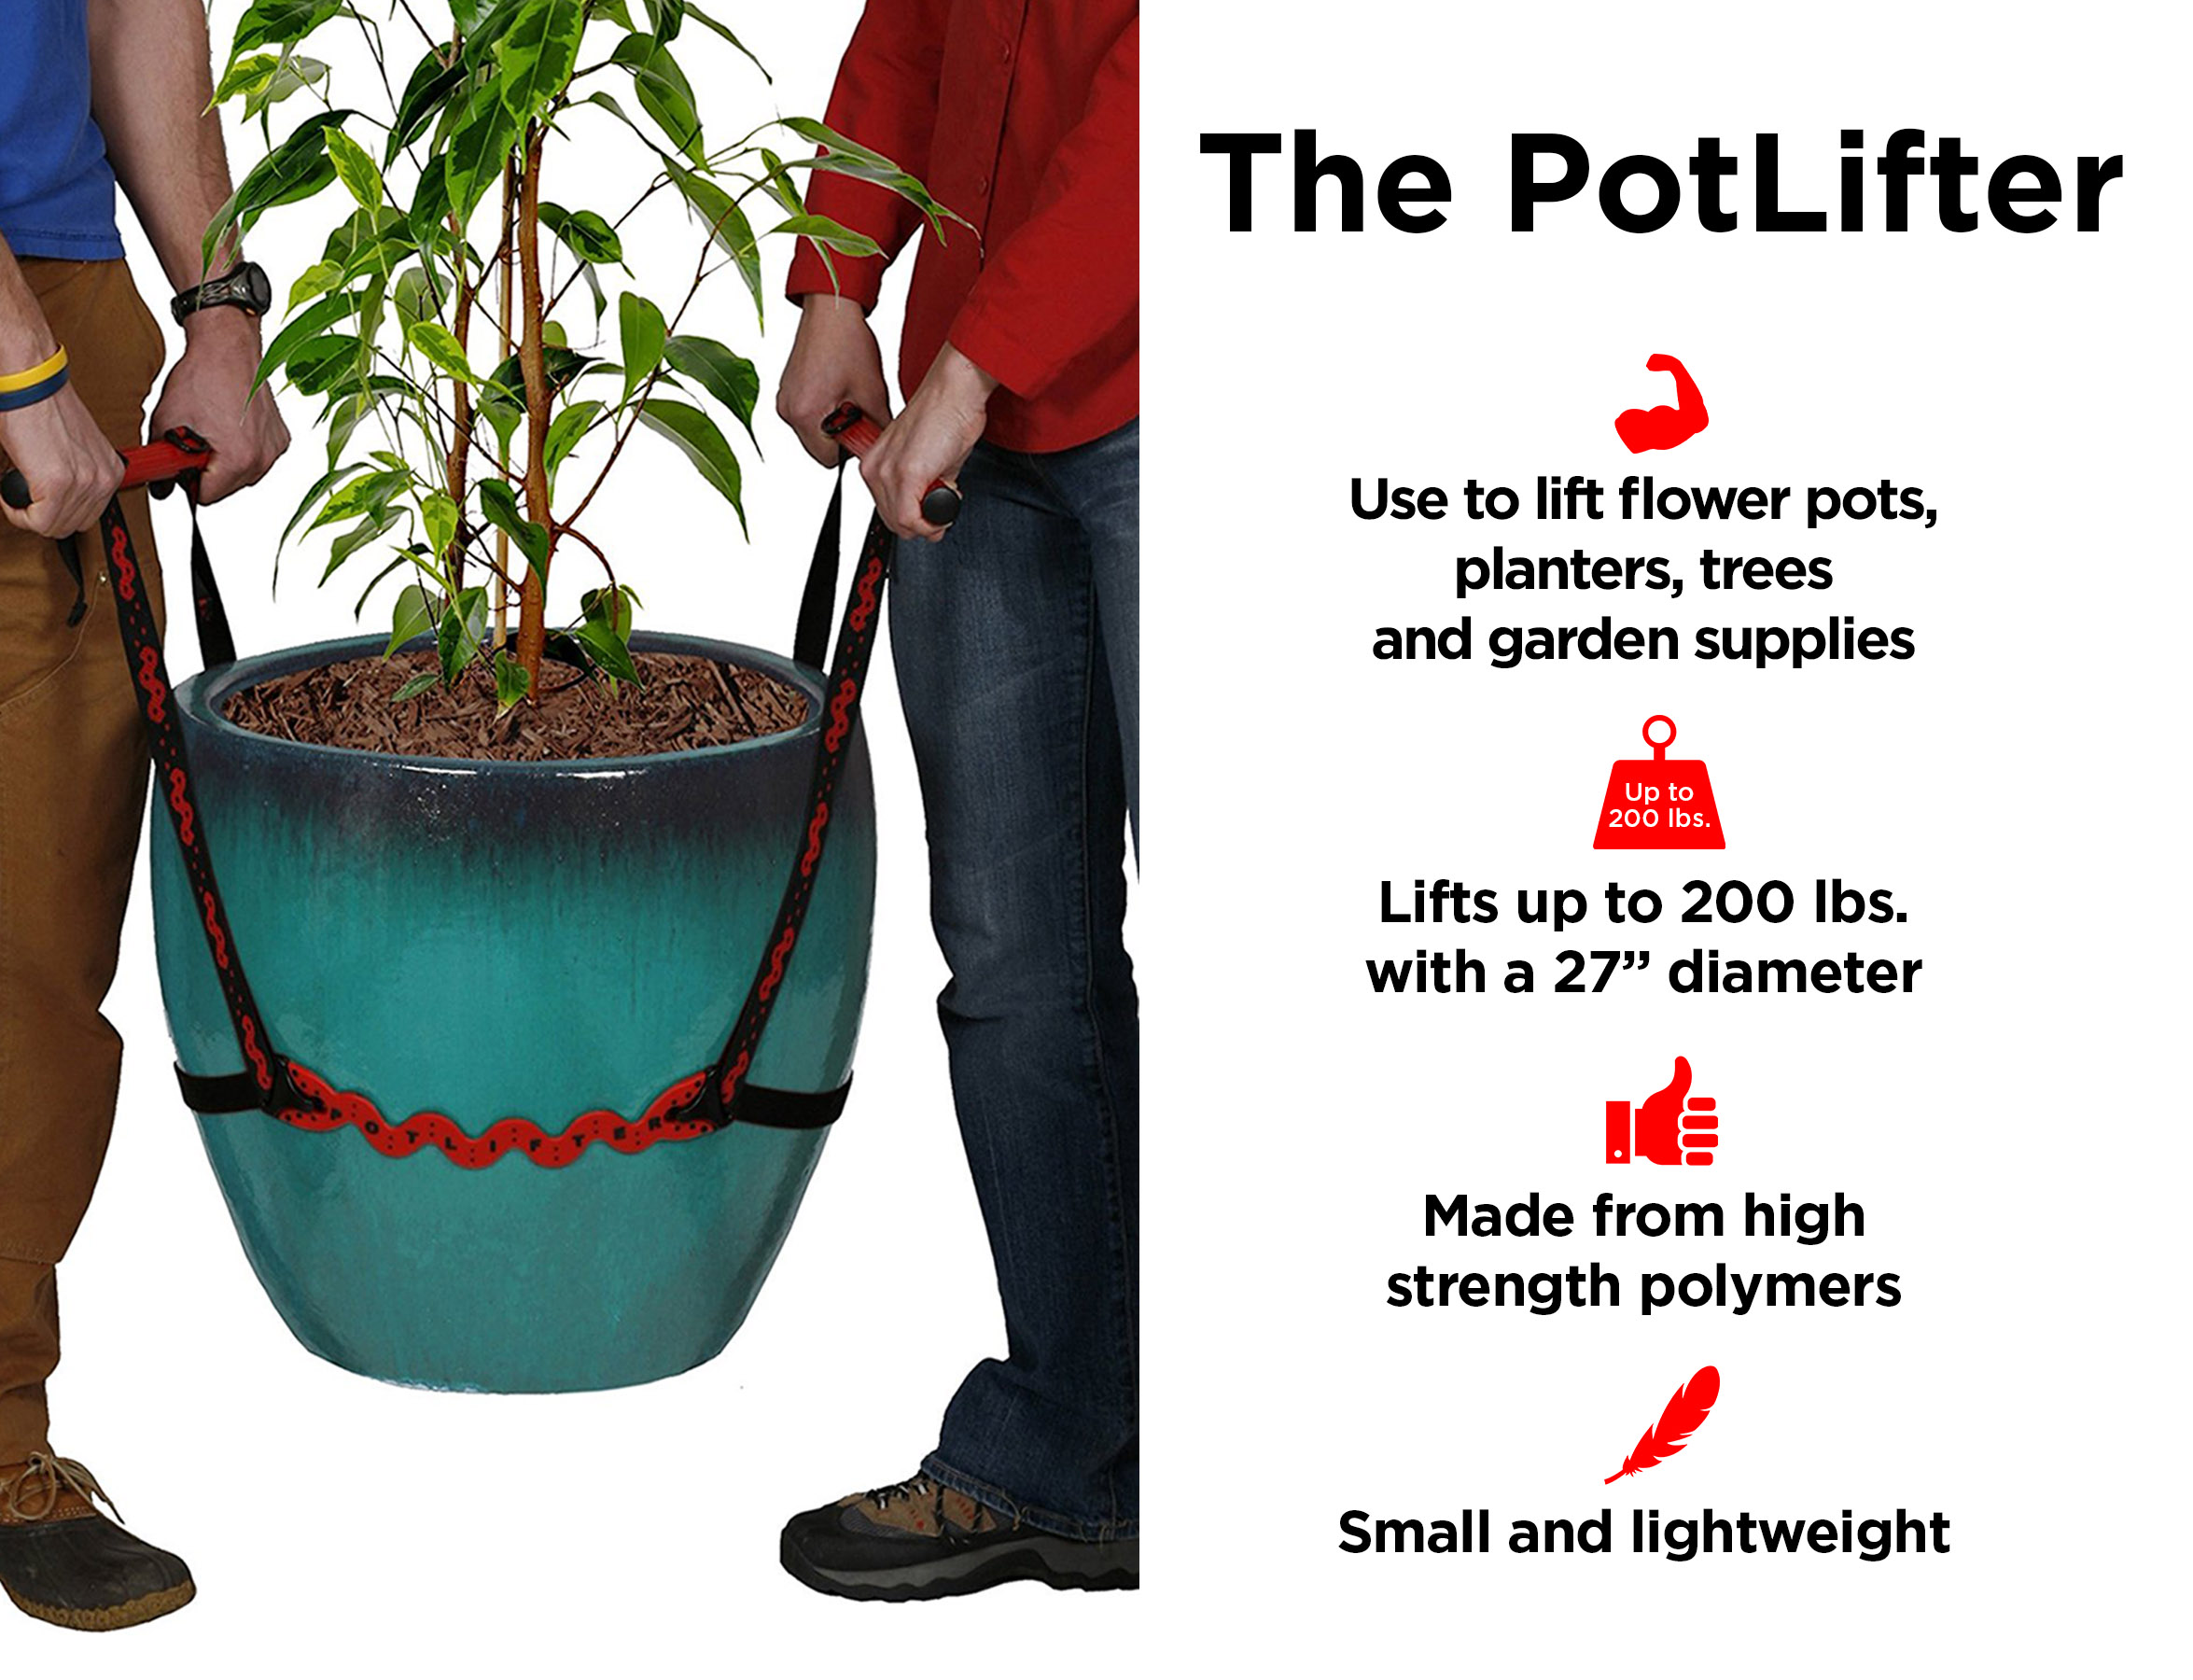 Gardening Heavy Lifting Tool Great to Lift Objects up to 200 lbs